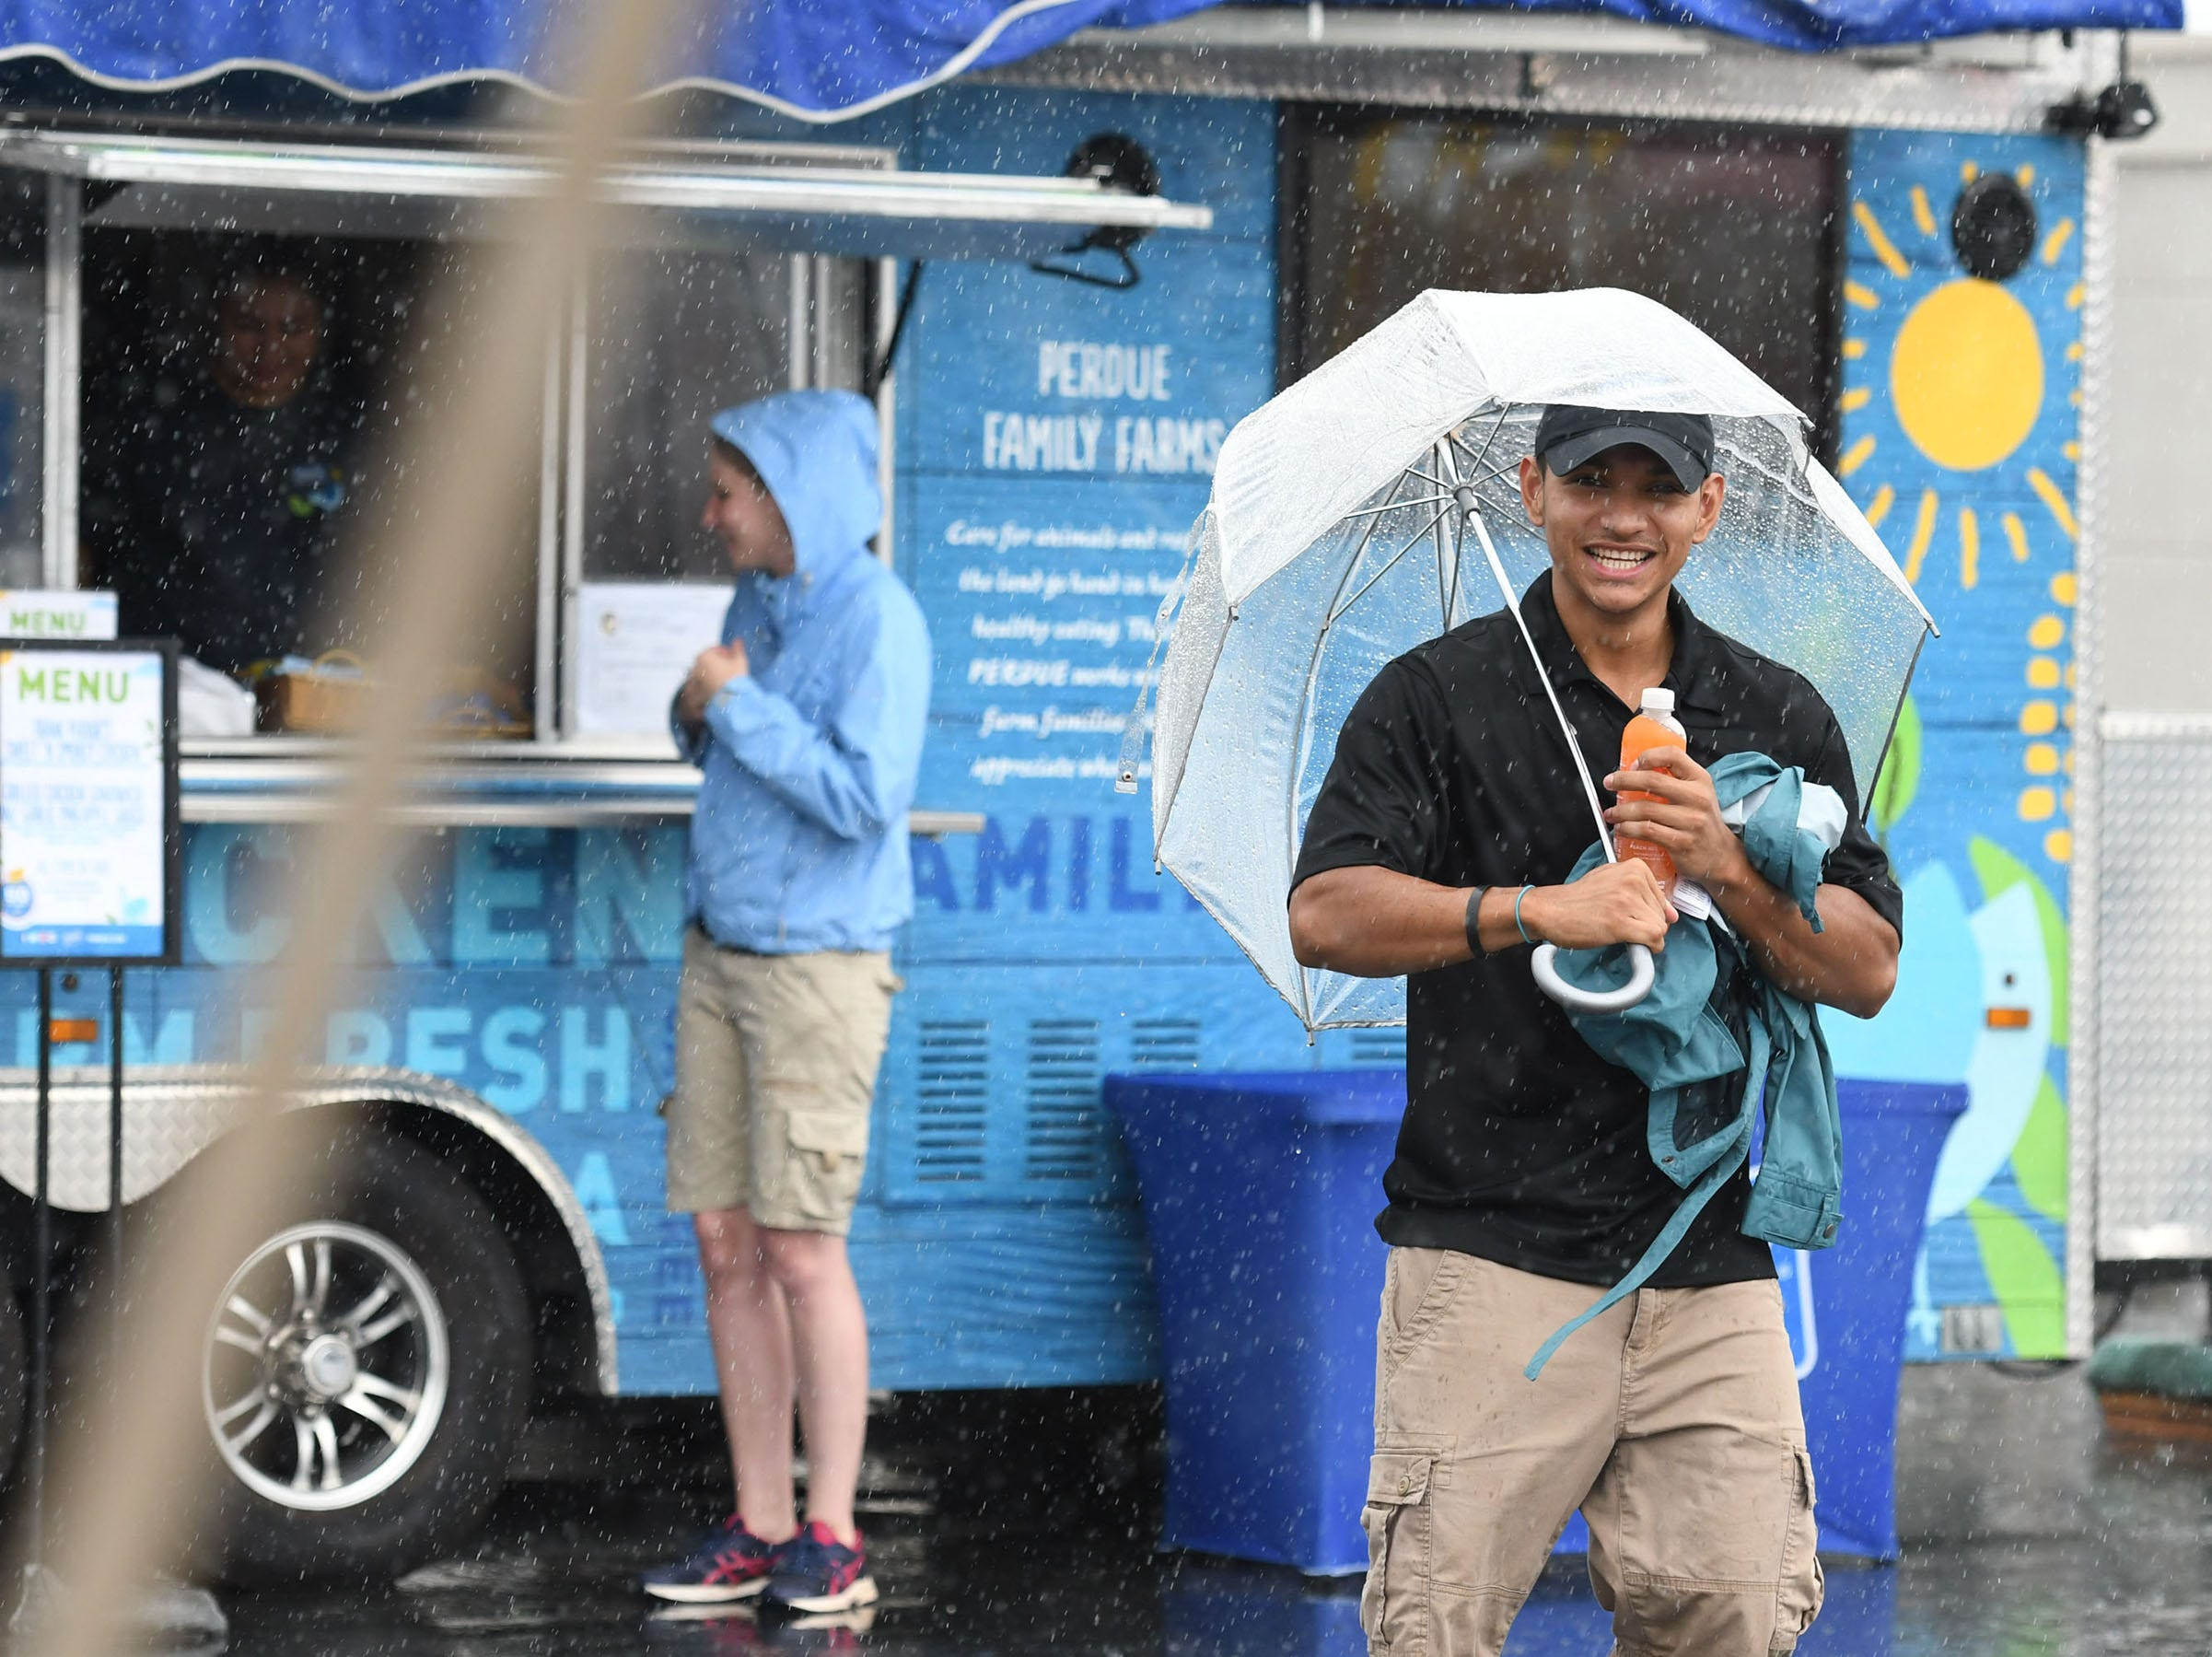 A bit of rain will not stop the fun at the 78th National Folk Festival in Salisbury, Md. on Saturday, Sept. 8, 2018.